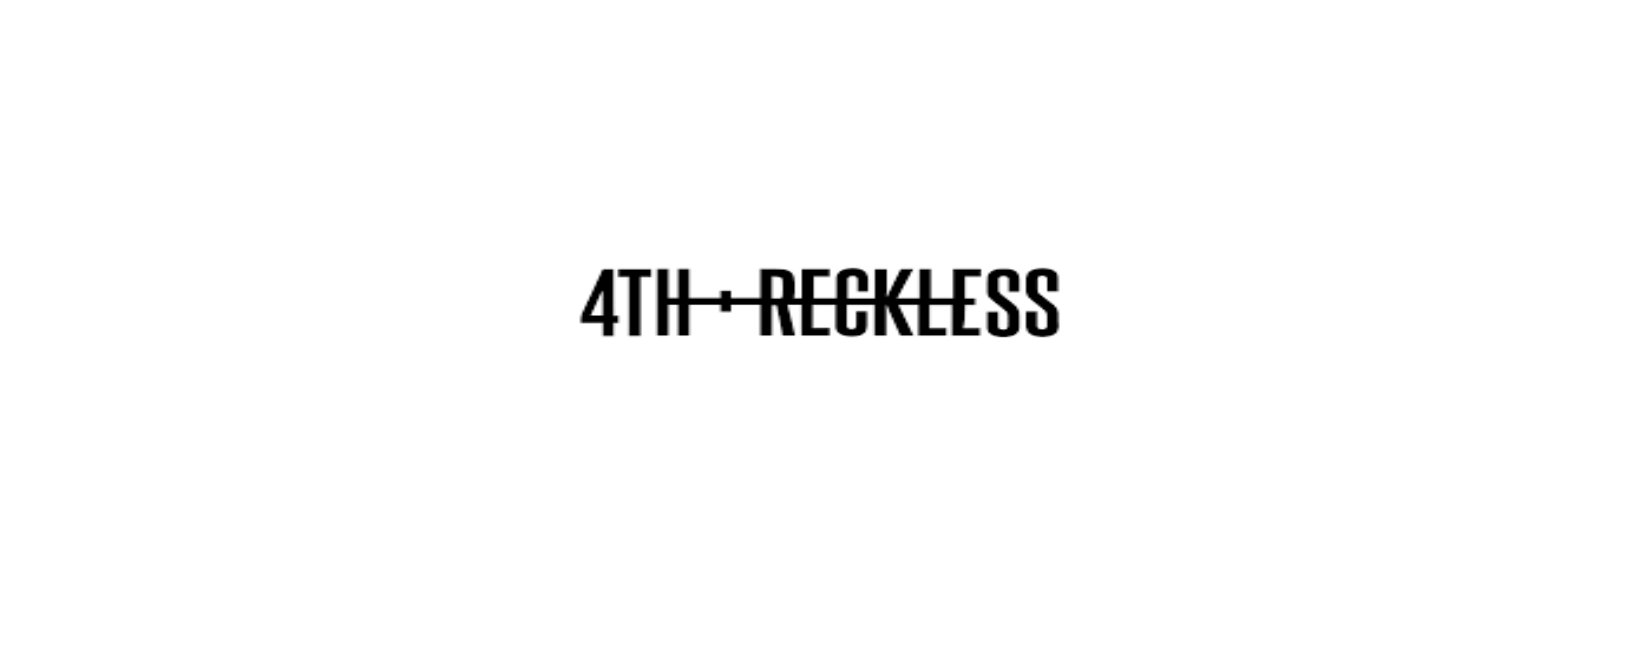 4th & Reckless Discount Code 2021